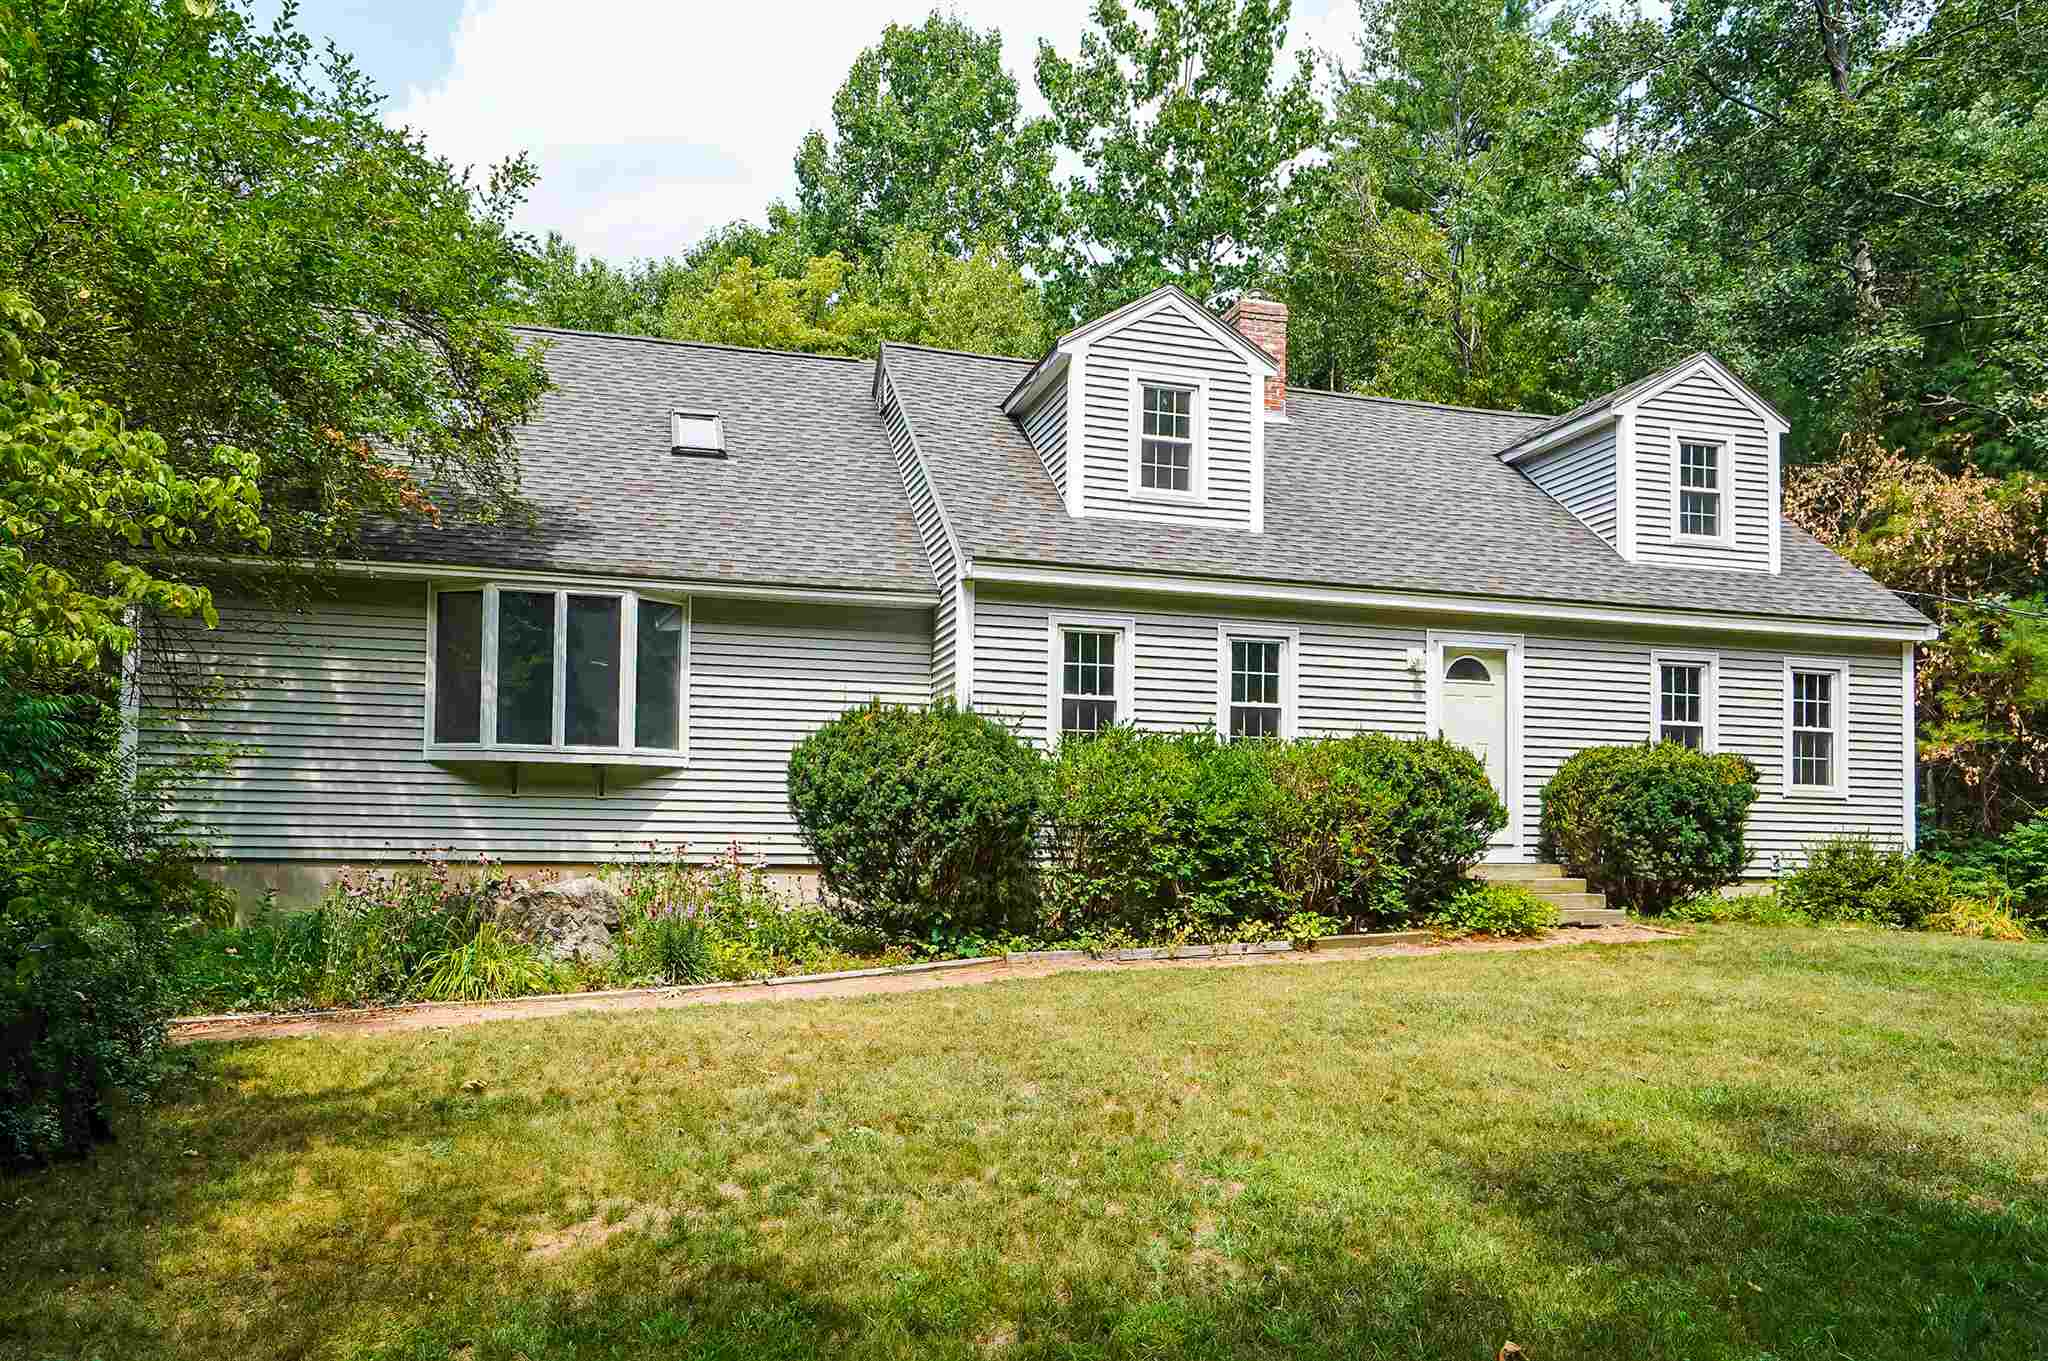 MLS 4821301: 44 Meetinghouse Road, Windham NH